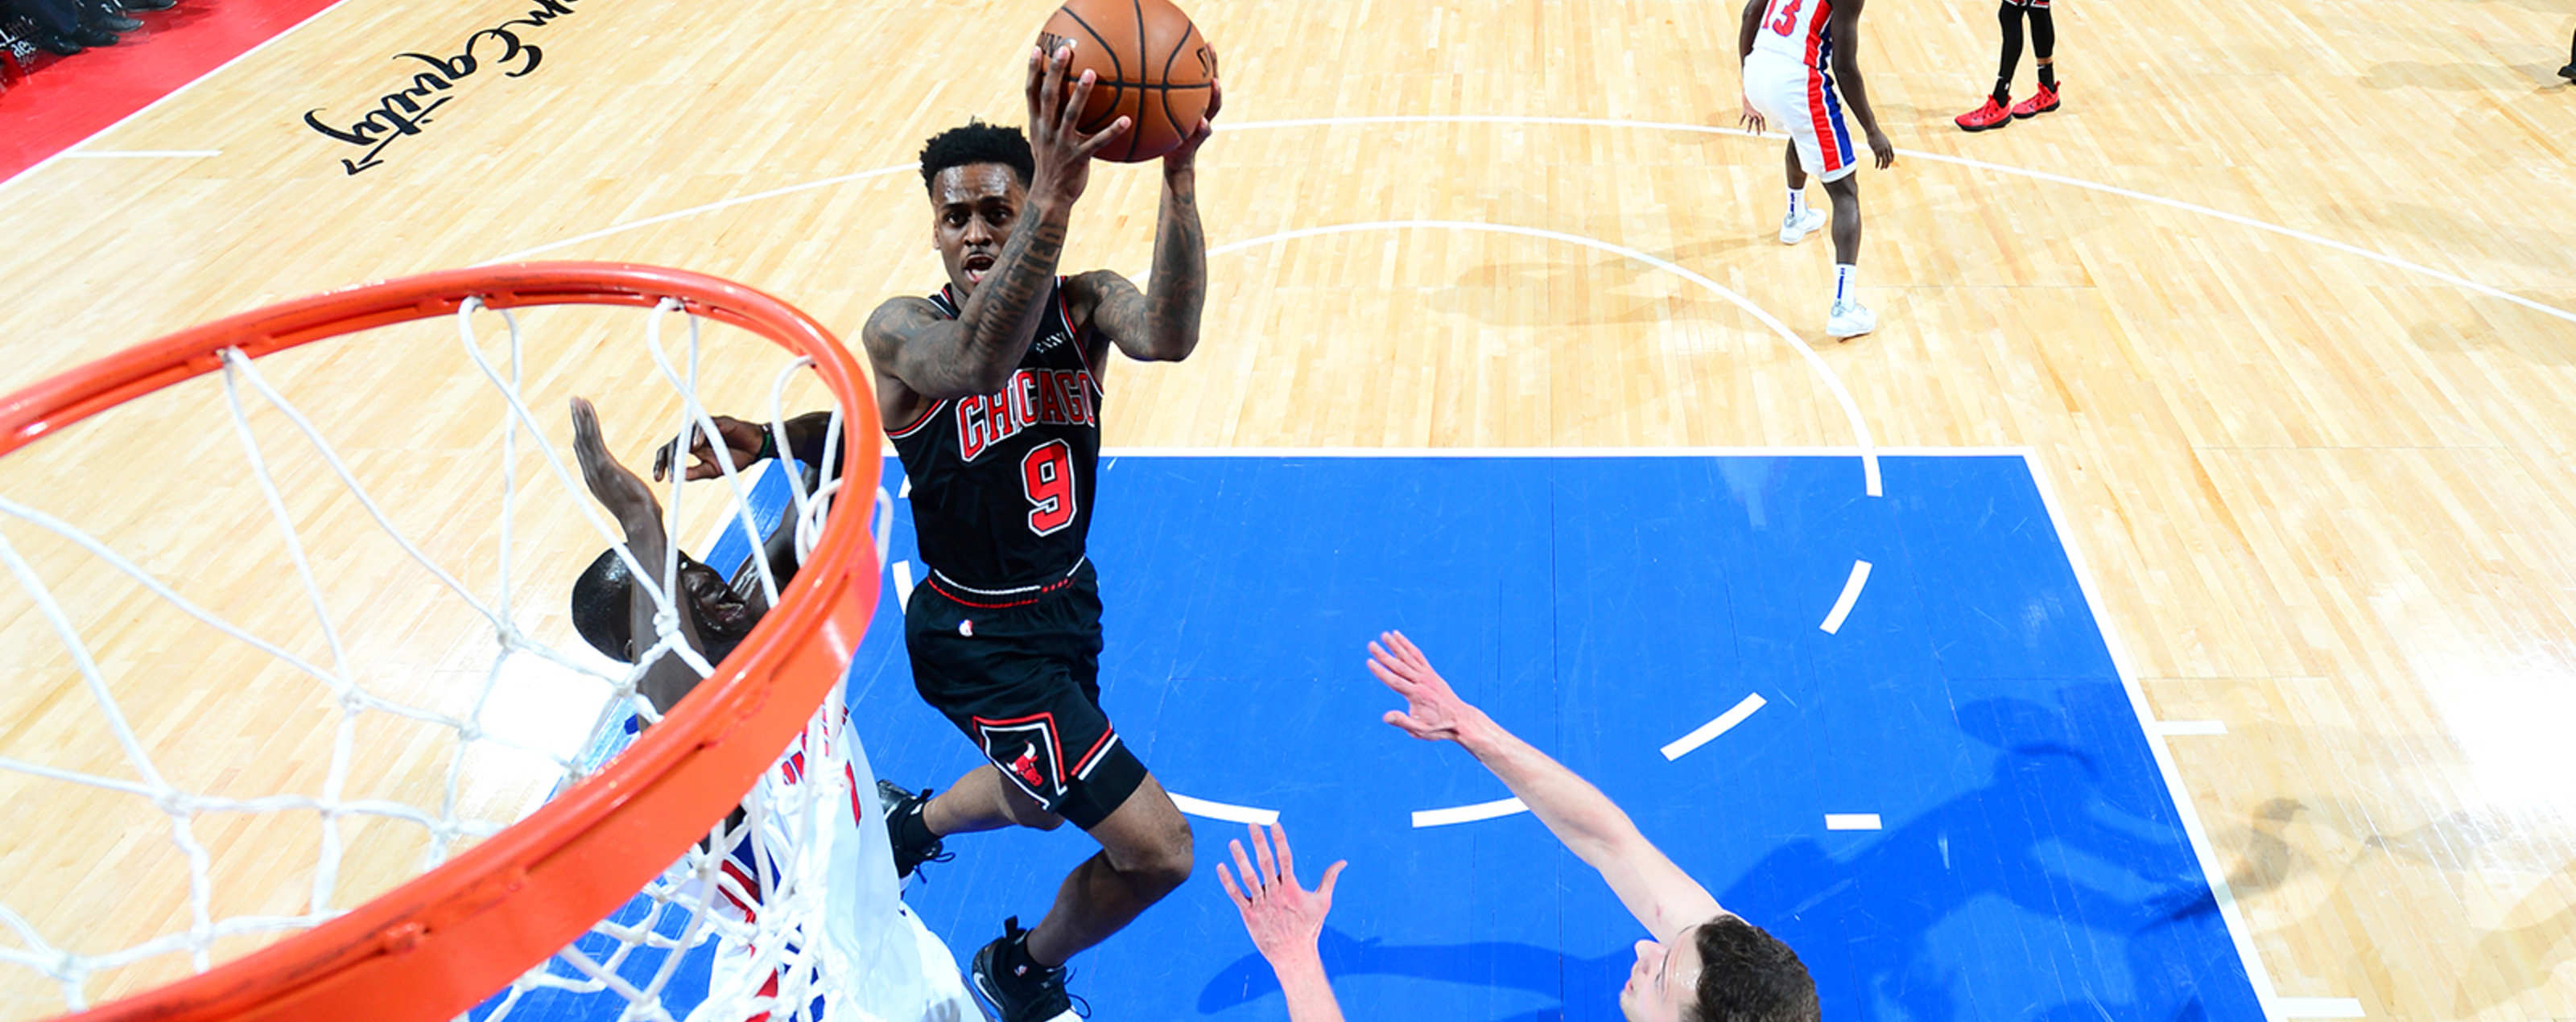 Antonio Blakeney shoots the ball against the Detroit Pistons